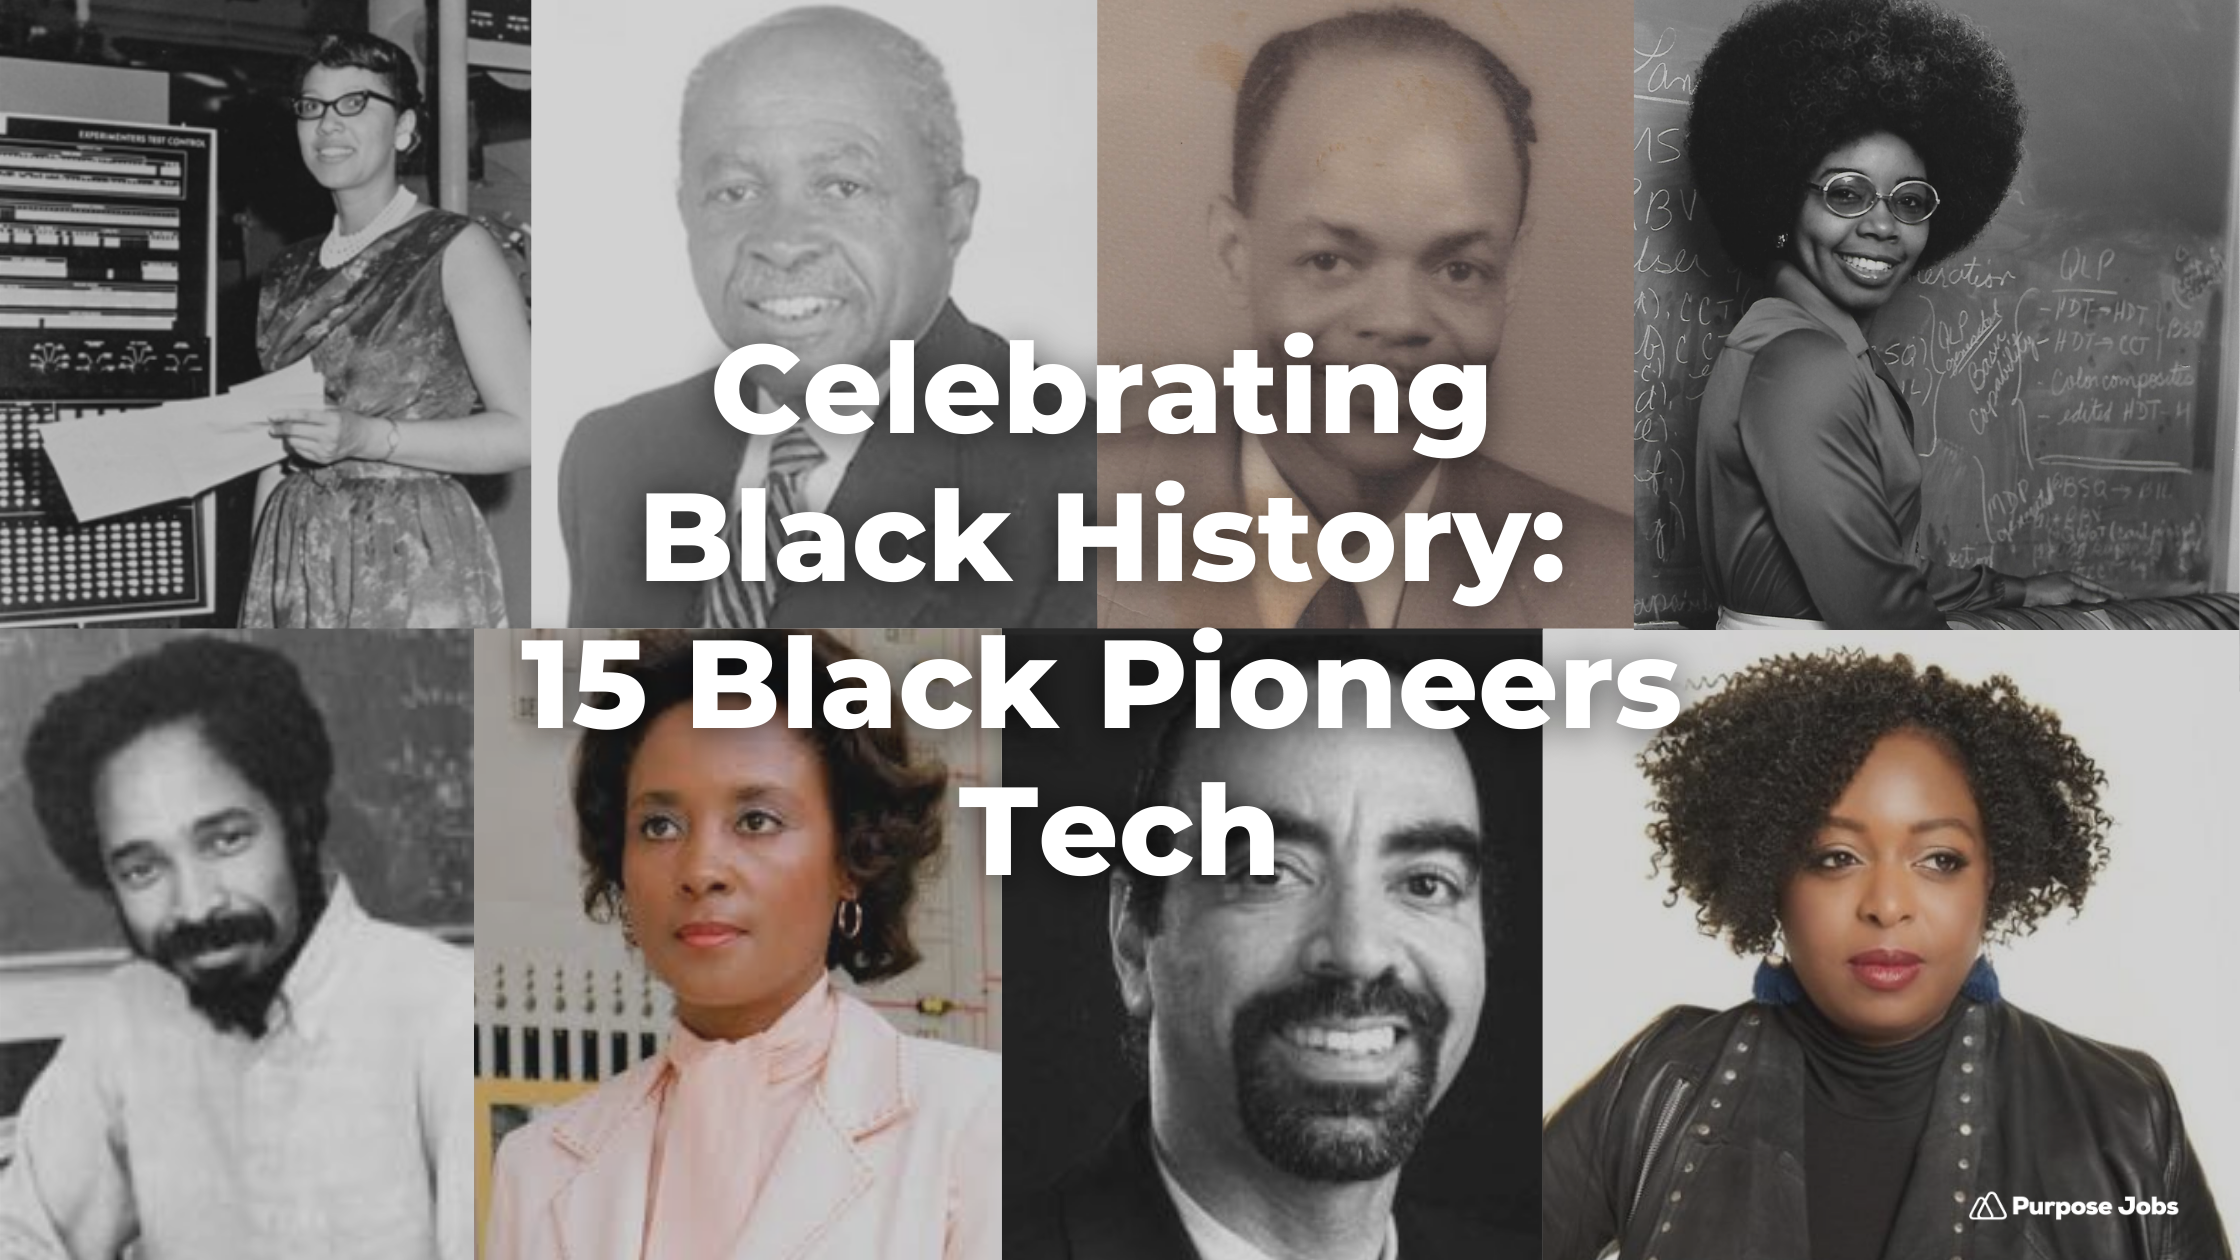 Celebrating Black History: 15 Black Leaders in Tech